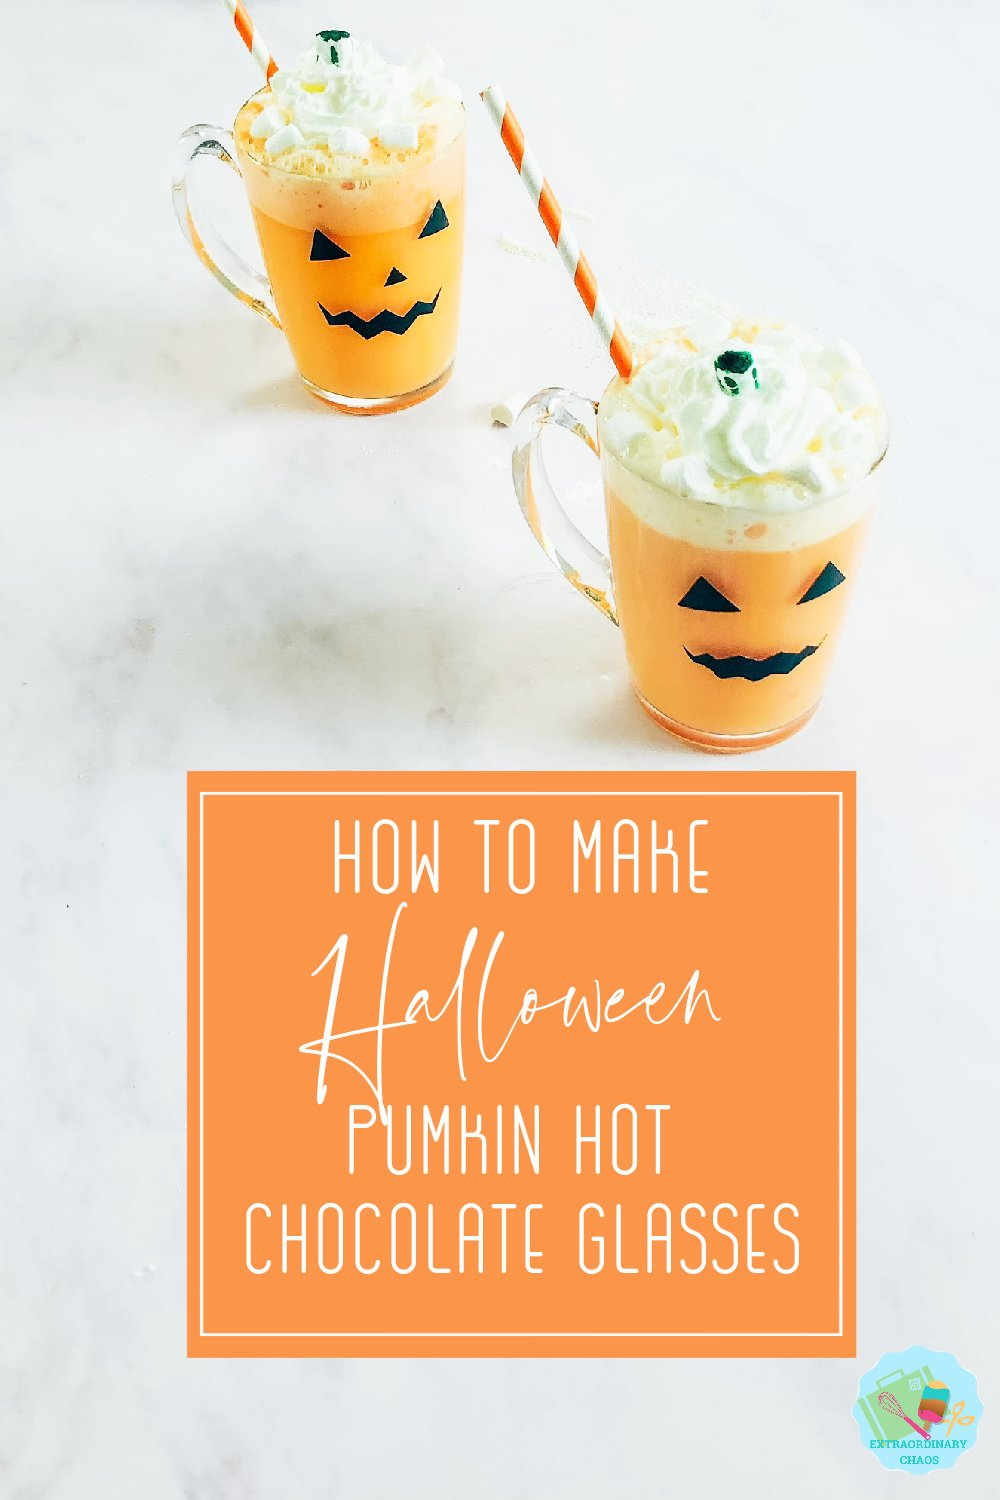 Halloween pumpkin hot chocolate glasses and orange hot chocolate for Halloween parties and trick or treating